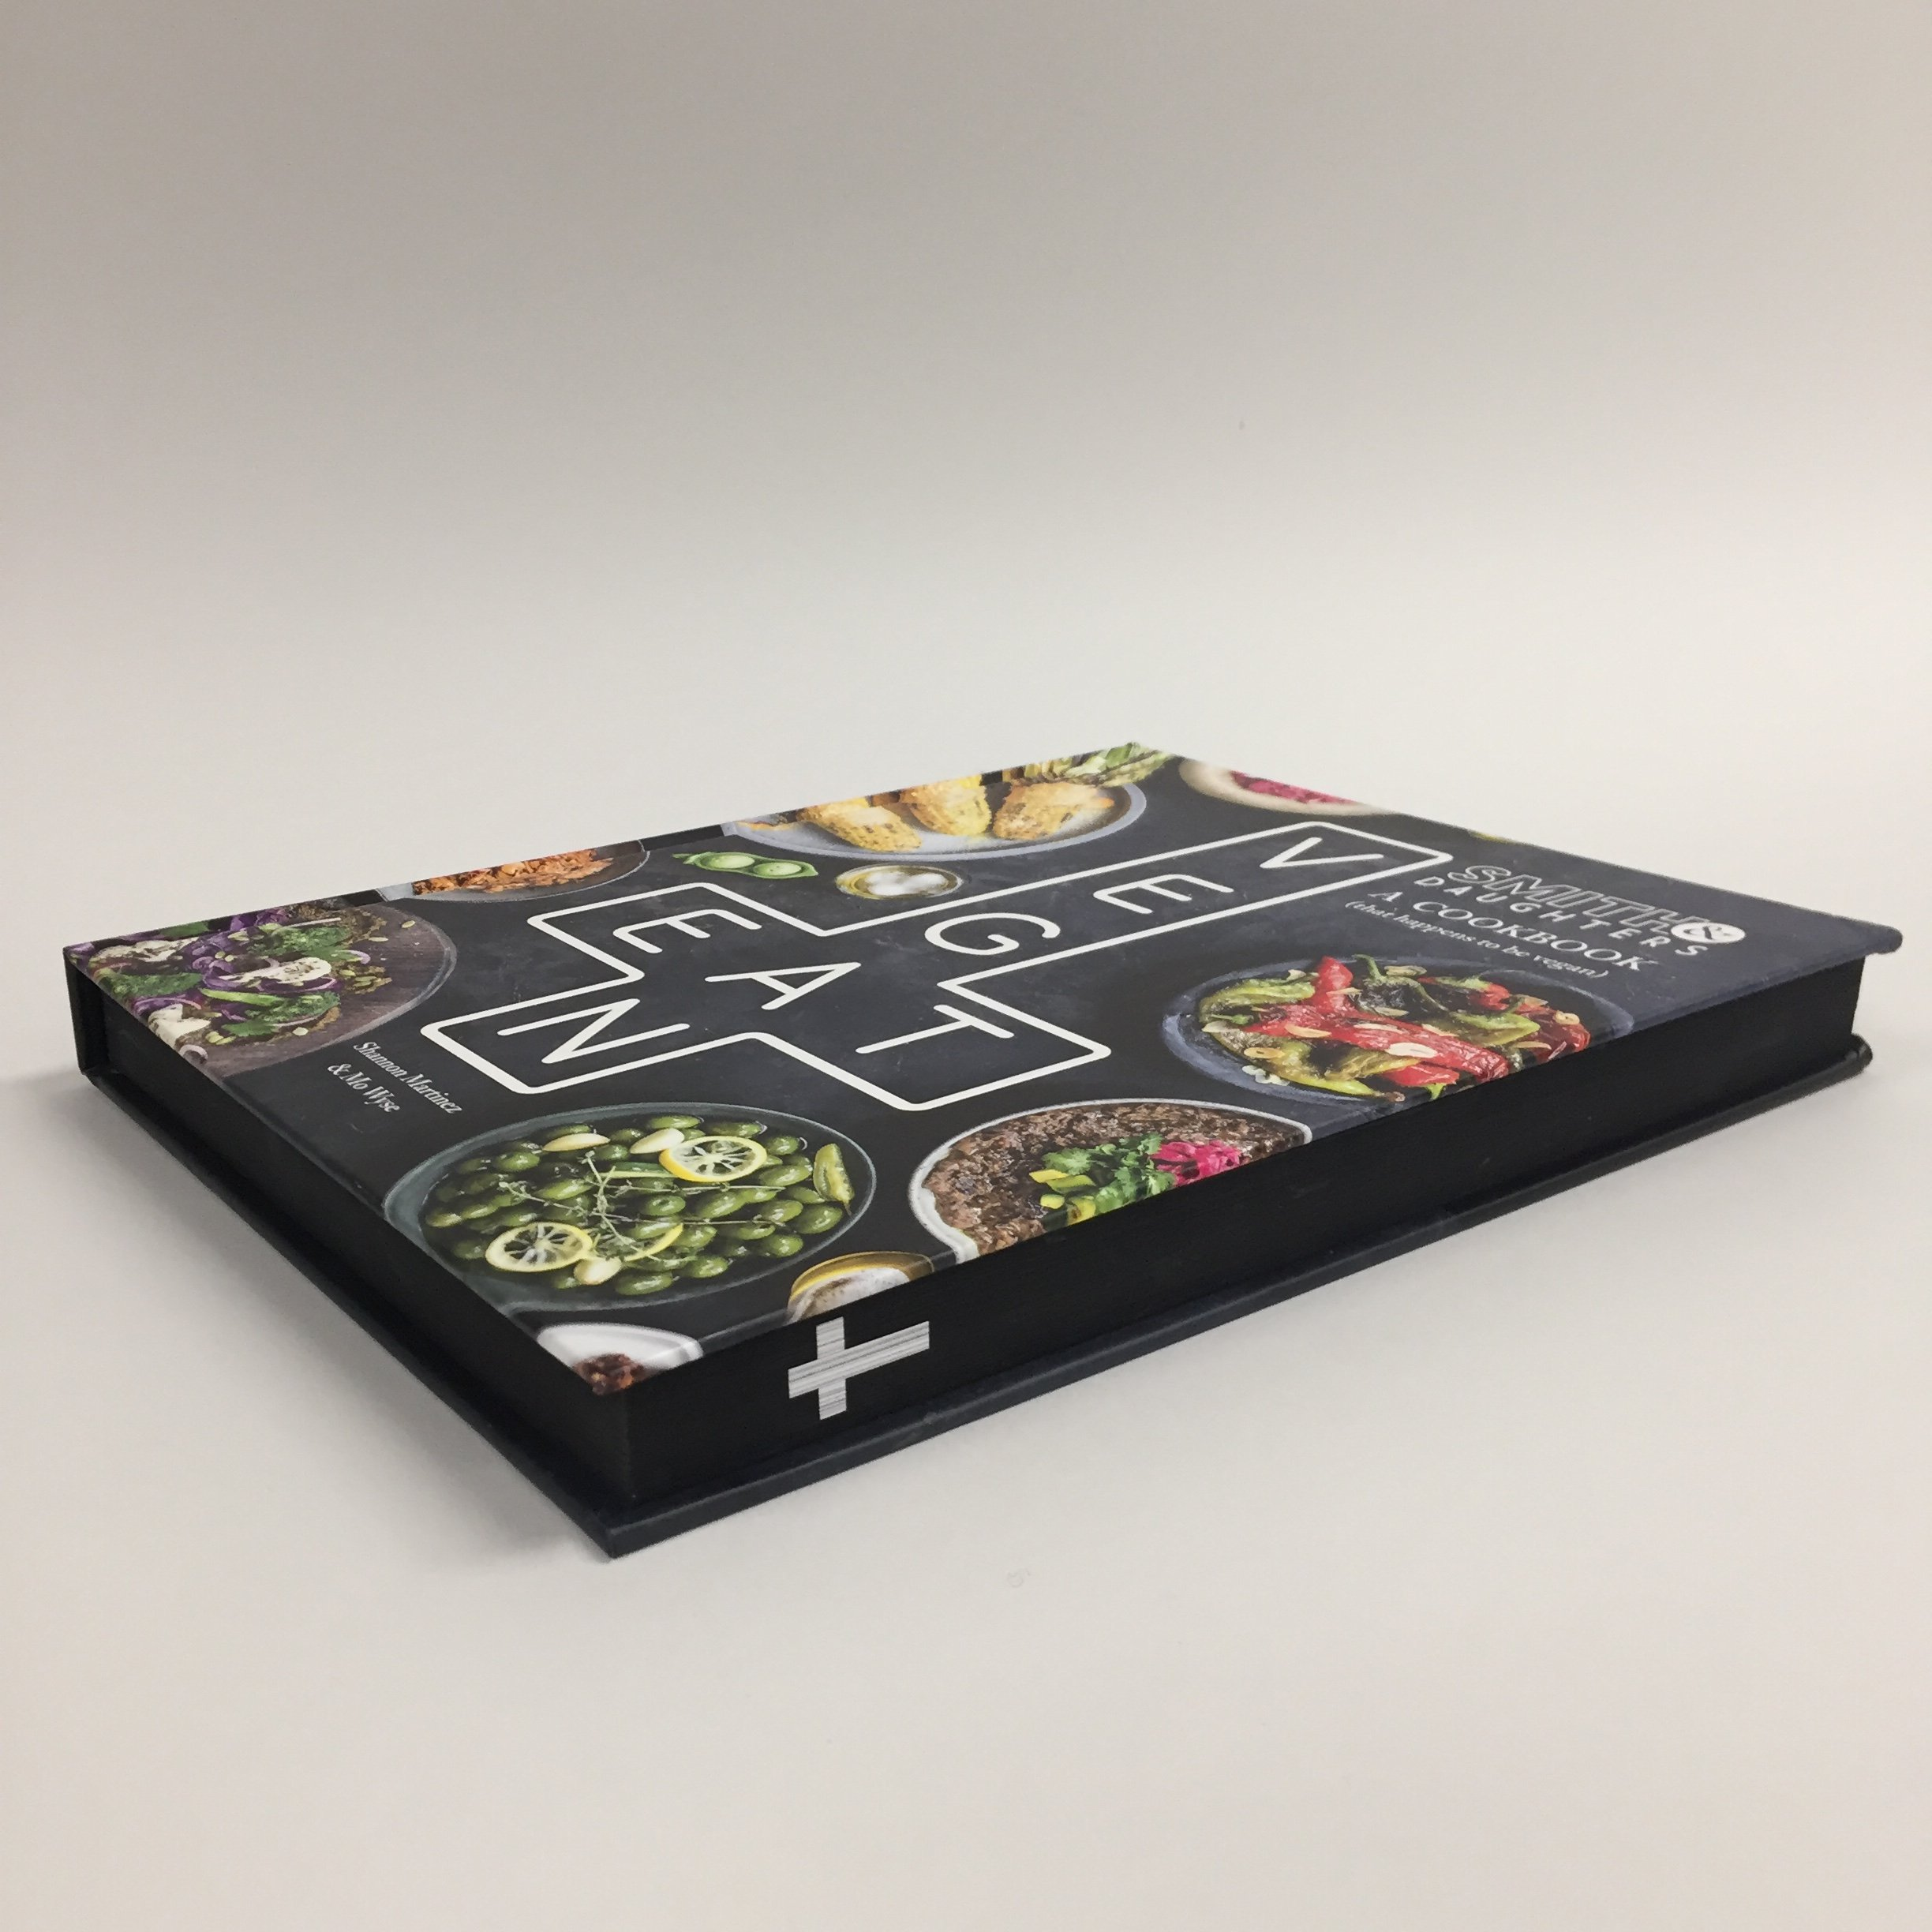 Smith & Daughters: A Cookbook (That Happens To Be Vegan) by HARDIE GRANT